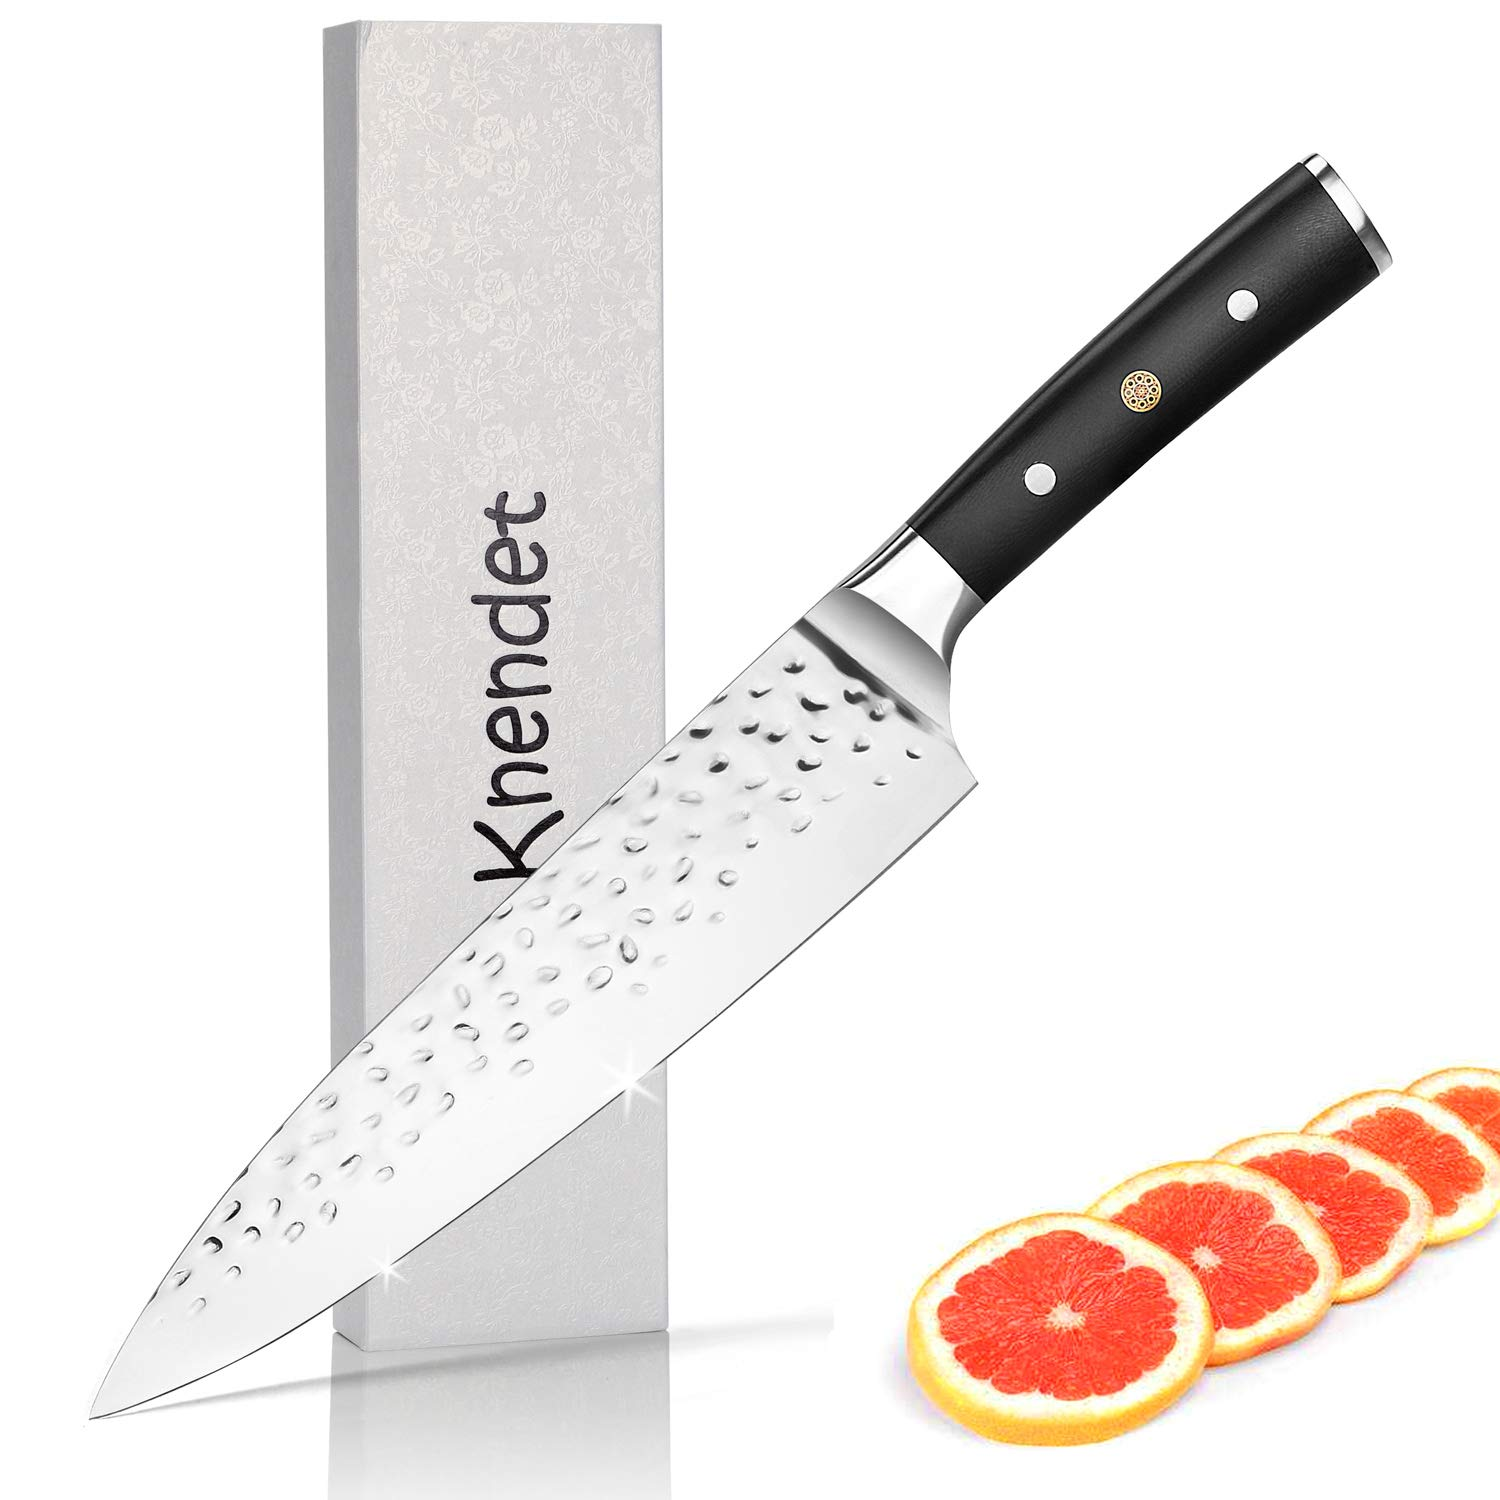 Chef Knife | Best Kitchen Knife for Home & Professional Cooking | 8 inch Chefs Knife stainless steel Blade | The Choice for Chopping-Slicing- Cutting Meats-Vegetables- Fruits